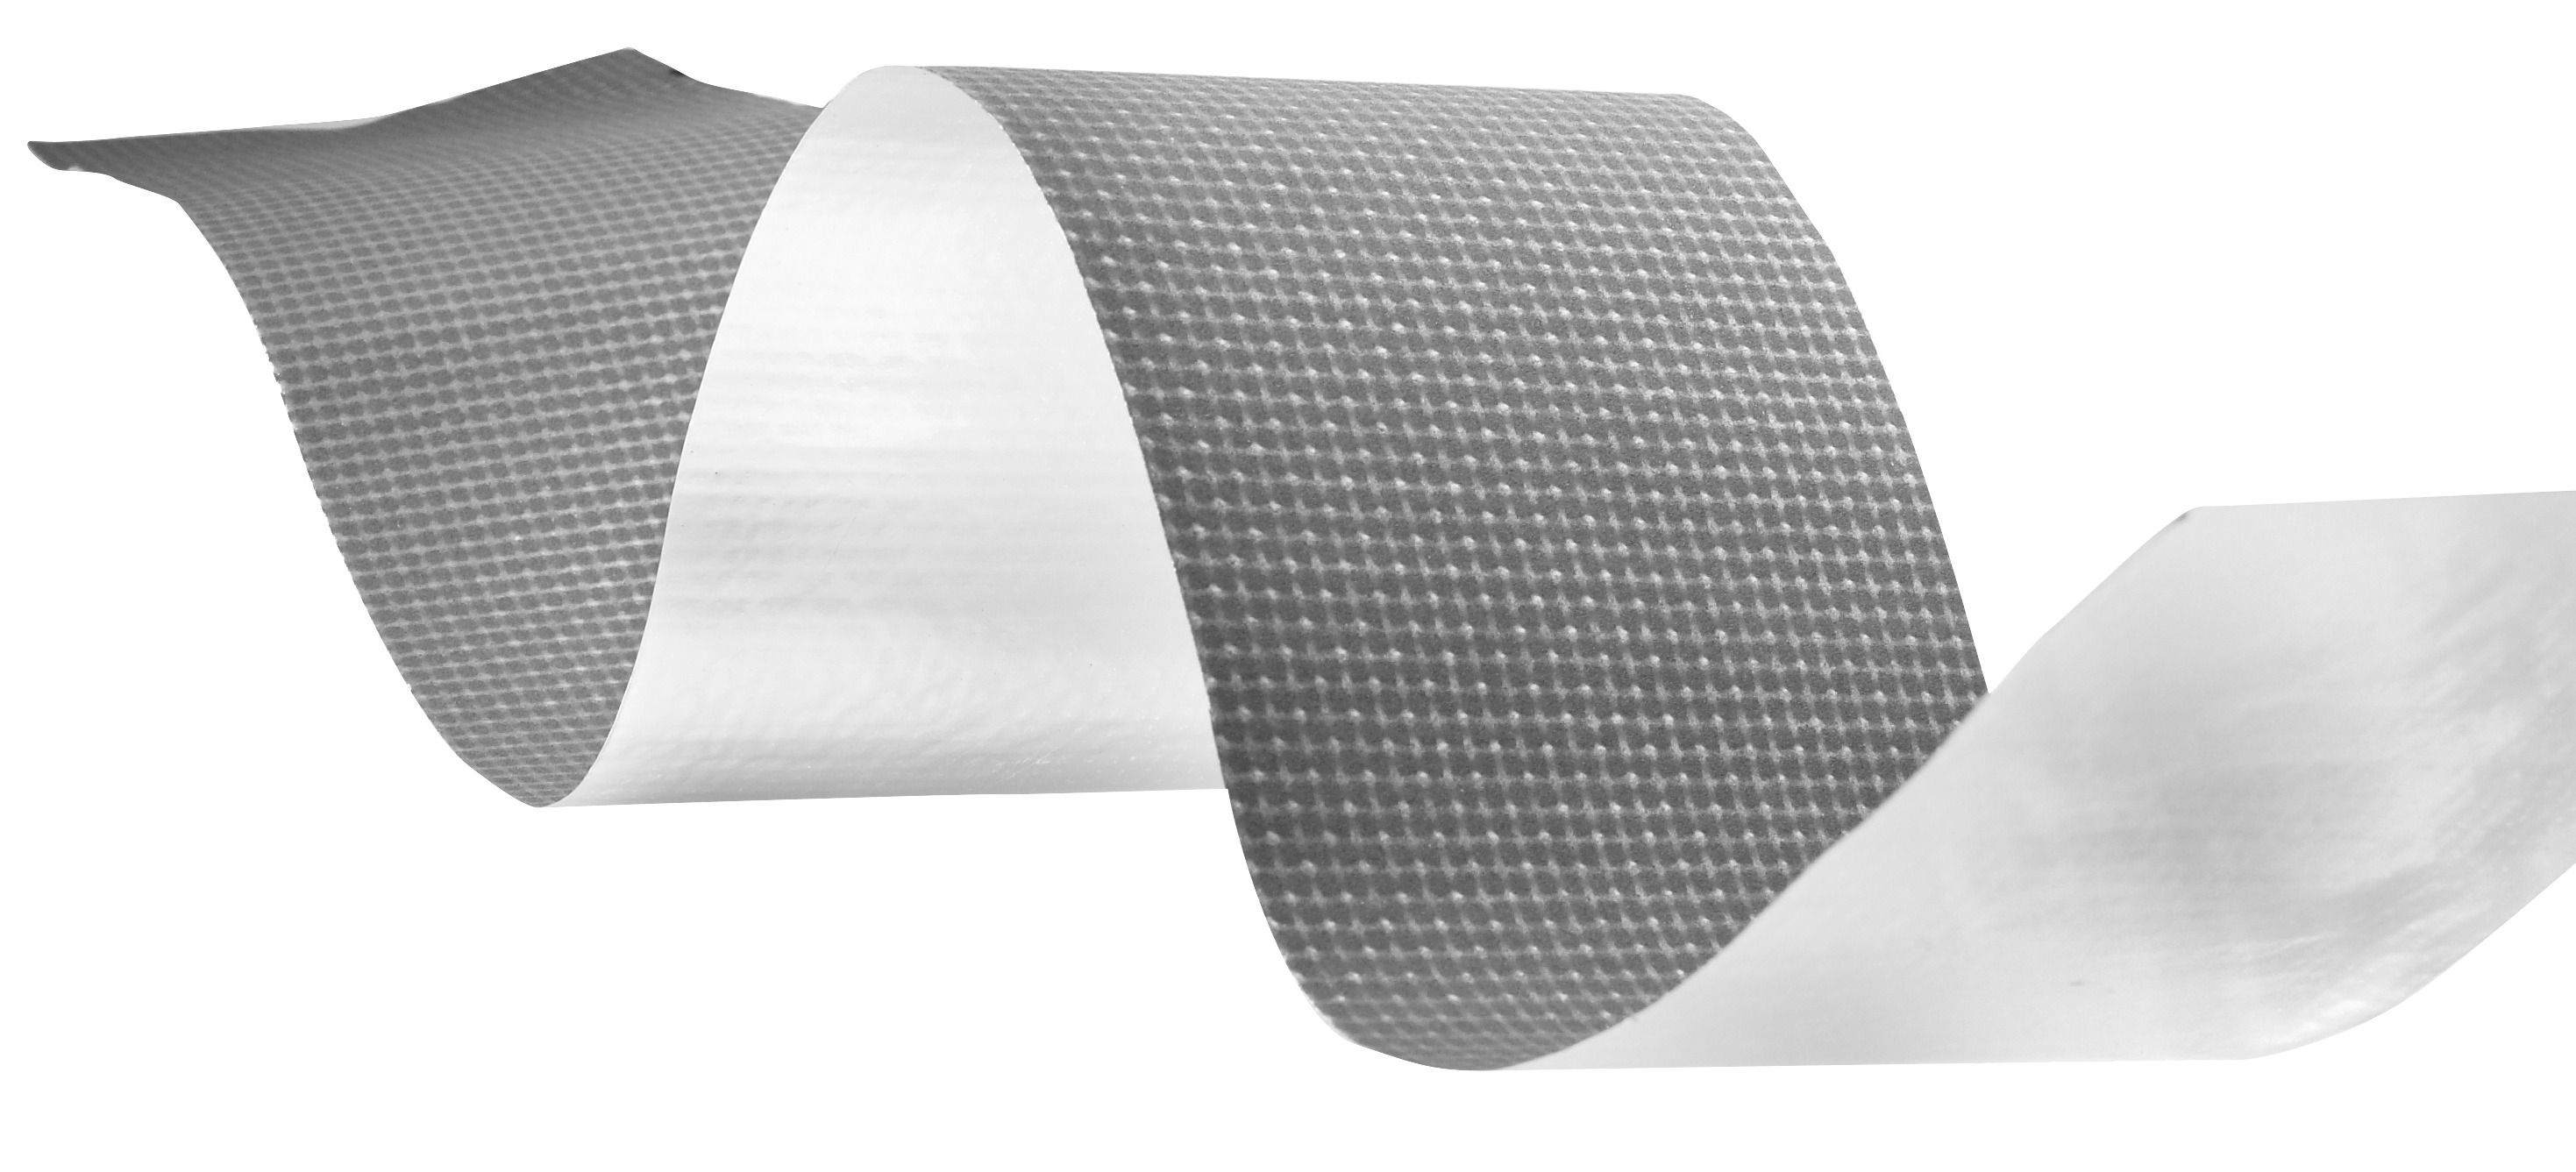 Zircoflex Is A Flexible Ceramic Heat Shield Material That Offers Excellent Thermal Barrier Protection At Minimal Wei Heat Barrier Wood Stove Fireplace Remodel